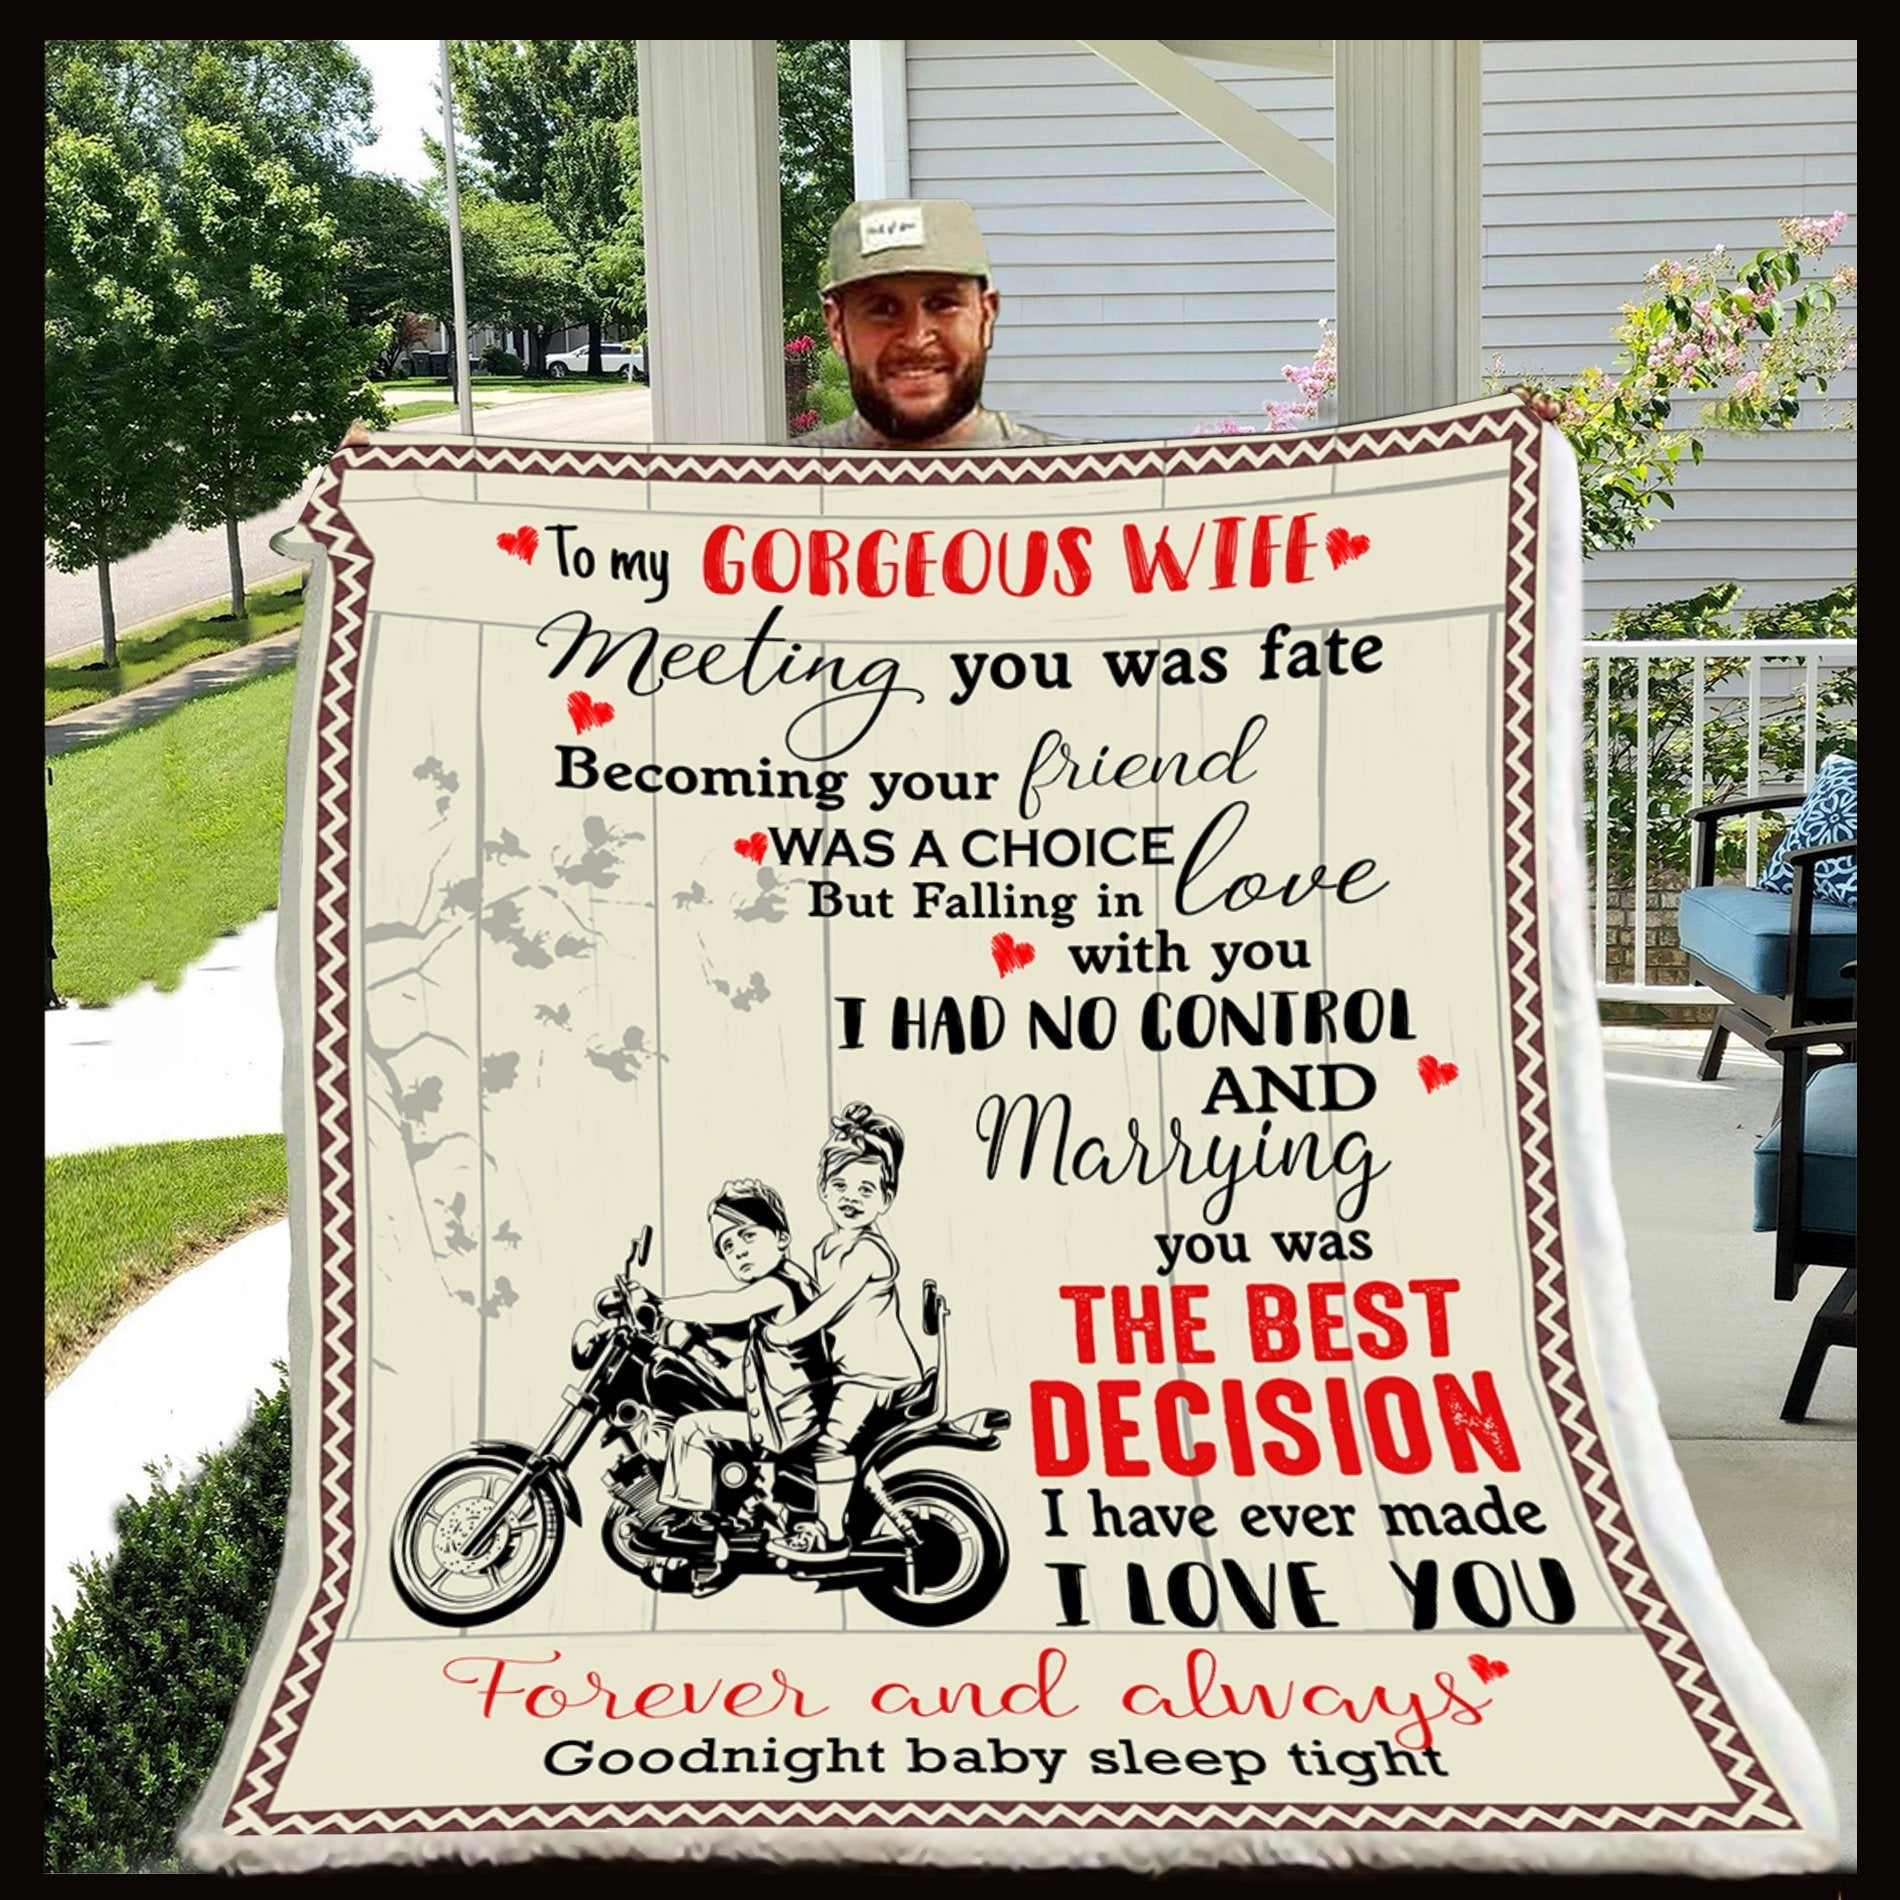 (CL06) LVL Biker blanket - To my gorgeous wife - Meeting you was fate